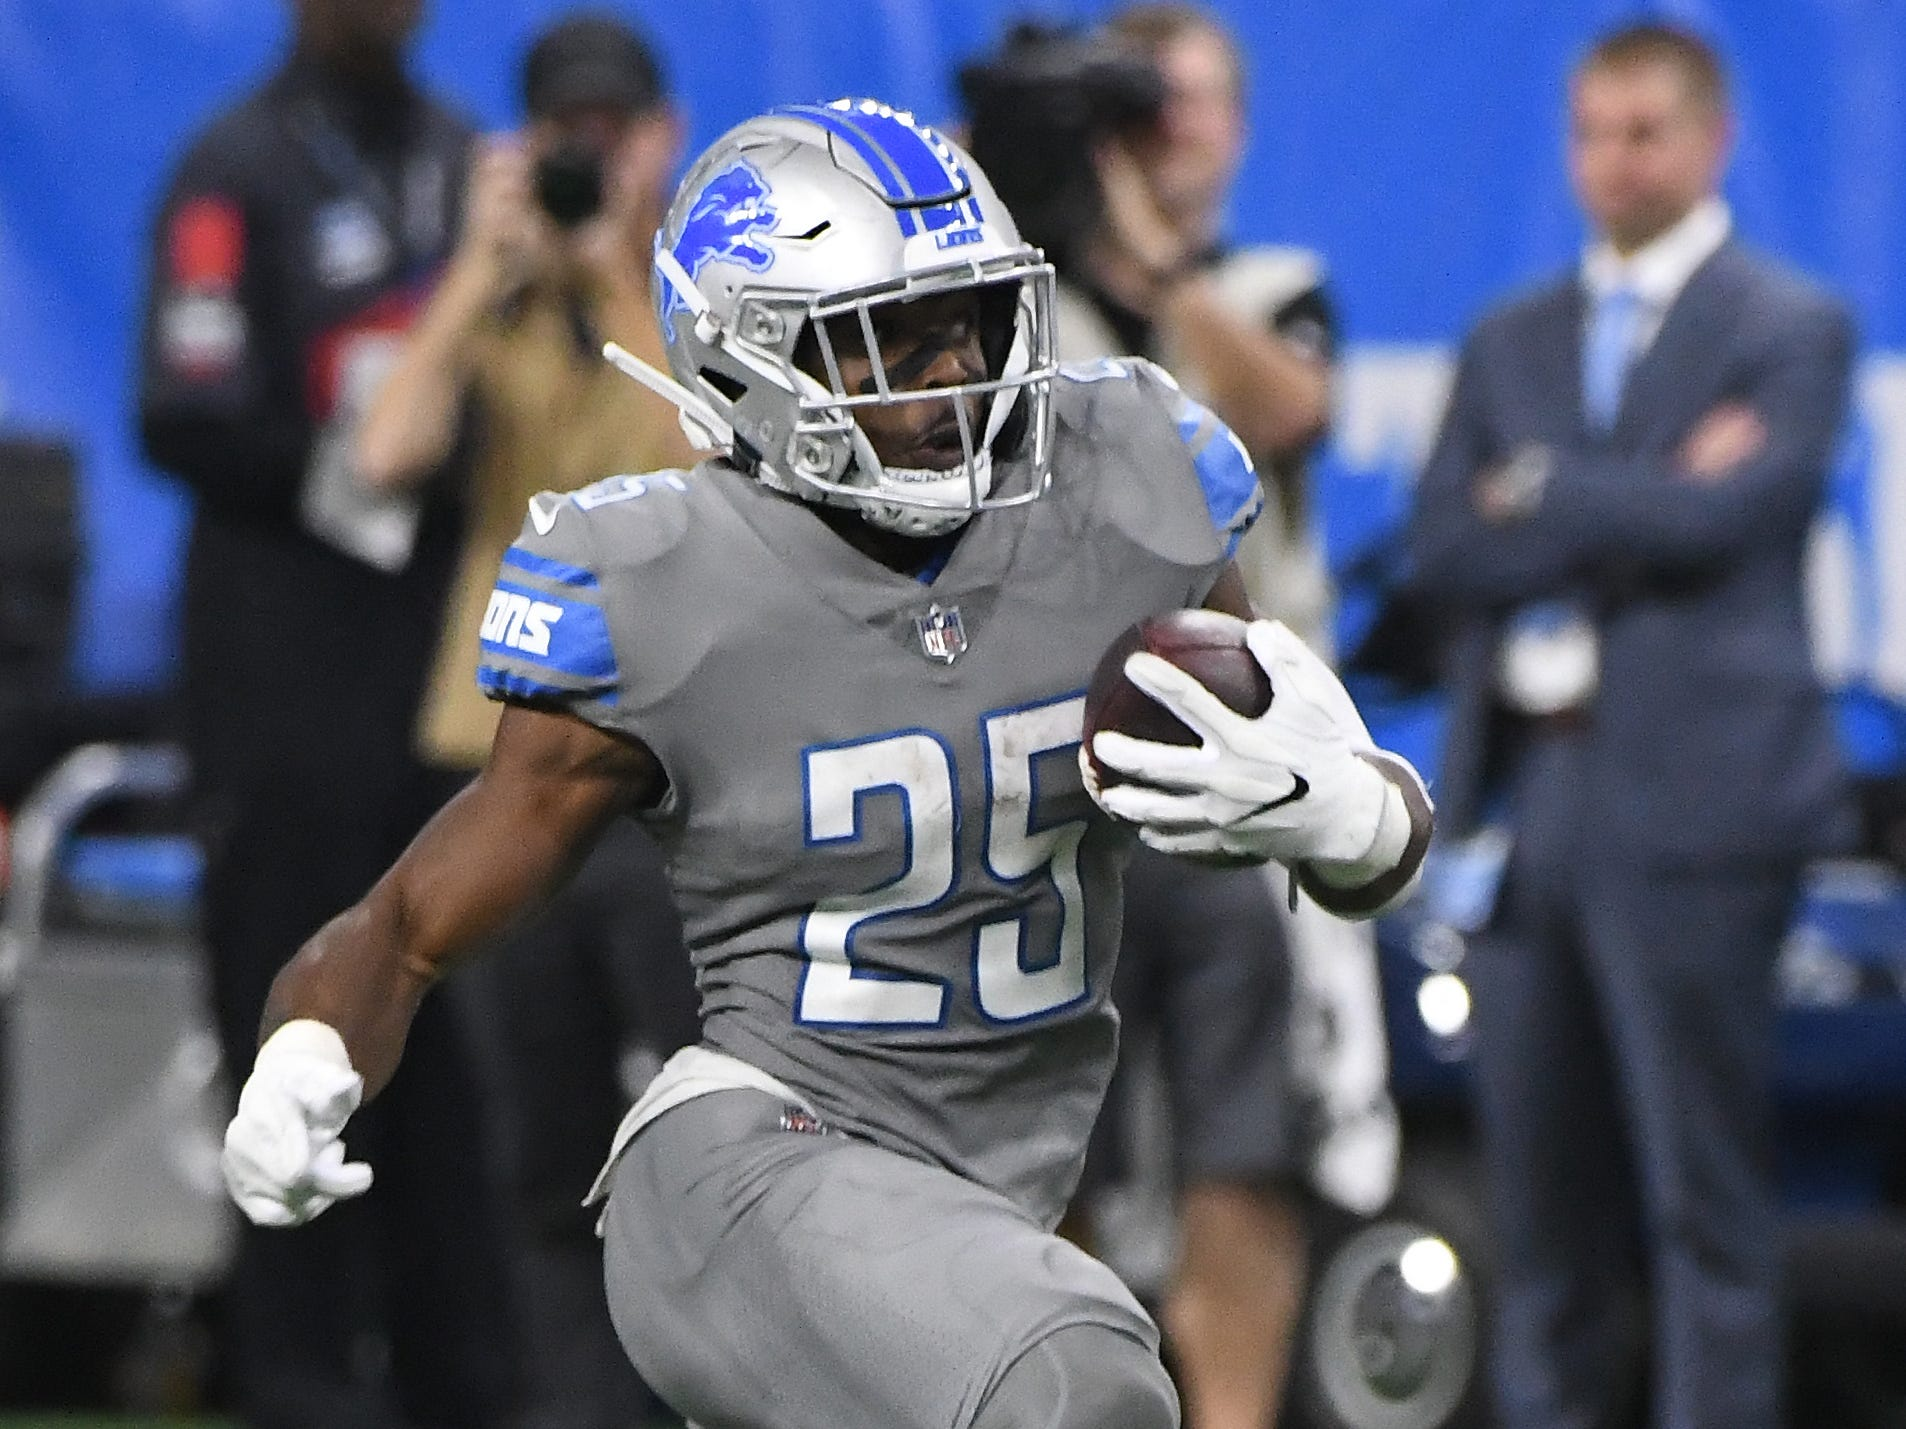 Lions running back Theo Riddick finds some open room for a first down run in the fourth quarter.